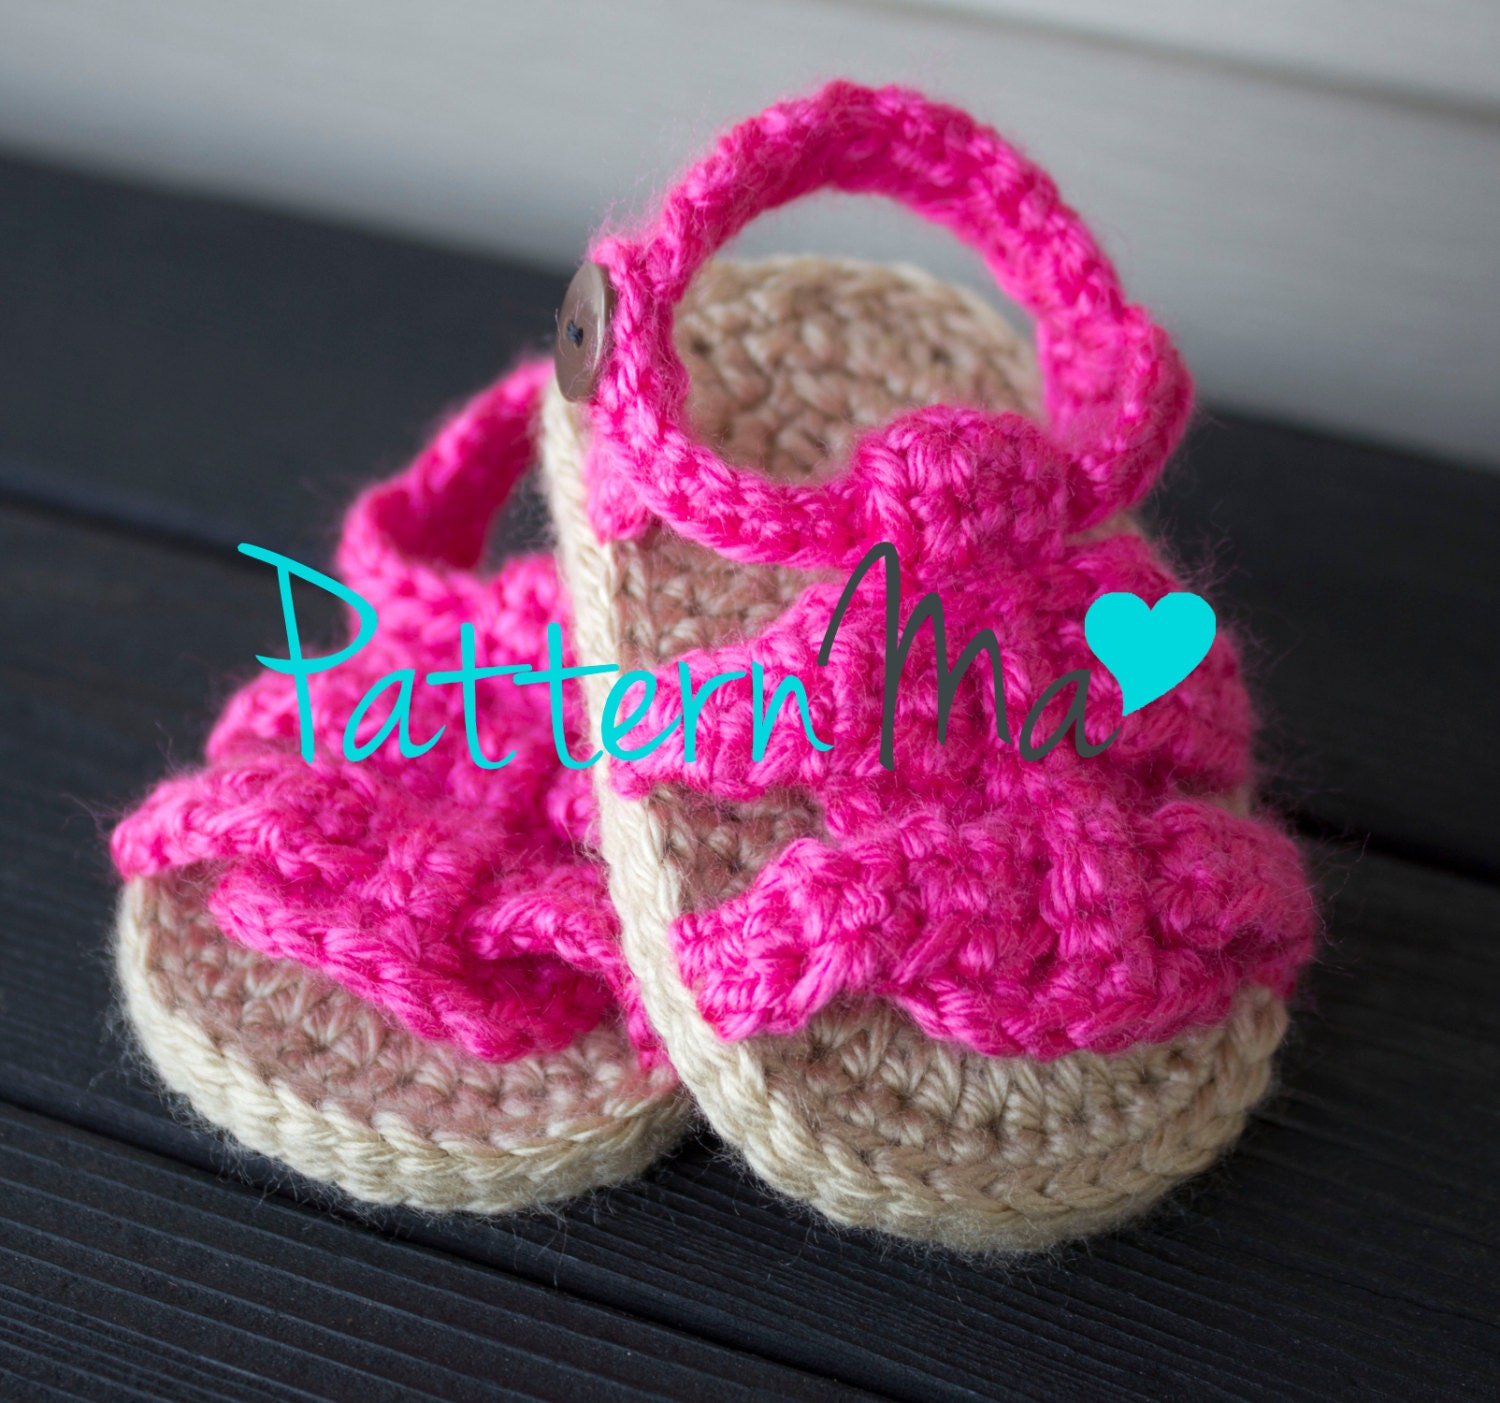 Crochet Baby Sandals Pattern Boy or Girl #9 from PatternMa on Etsy ...